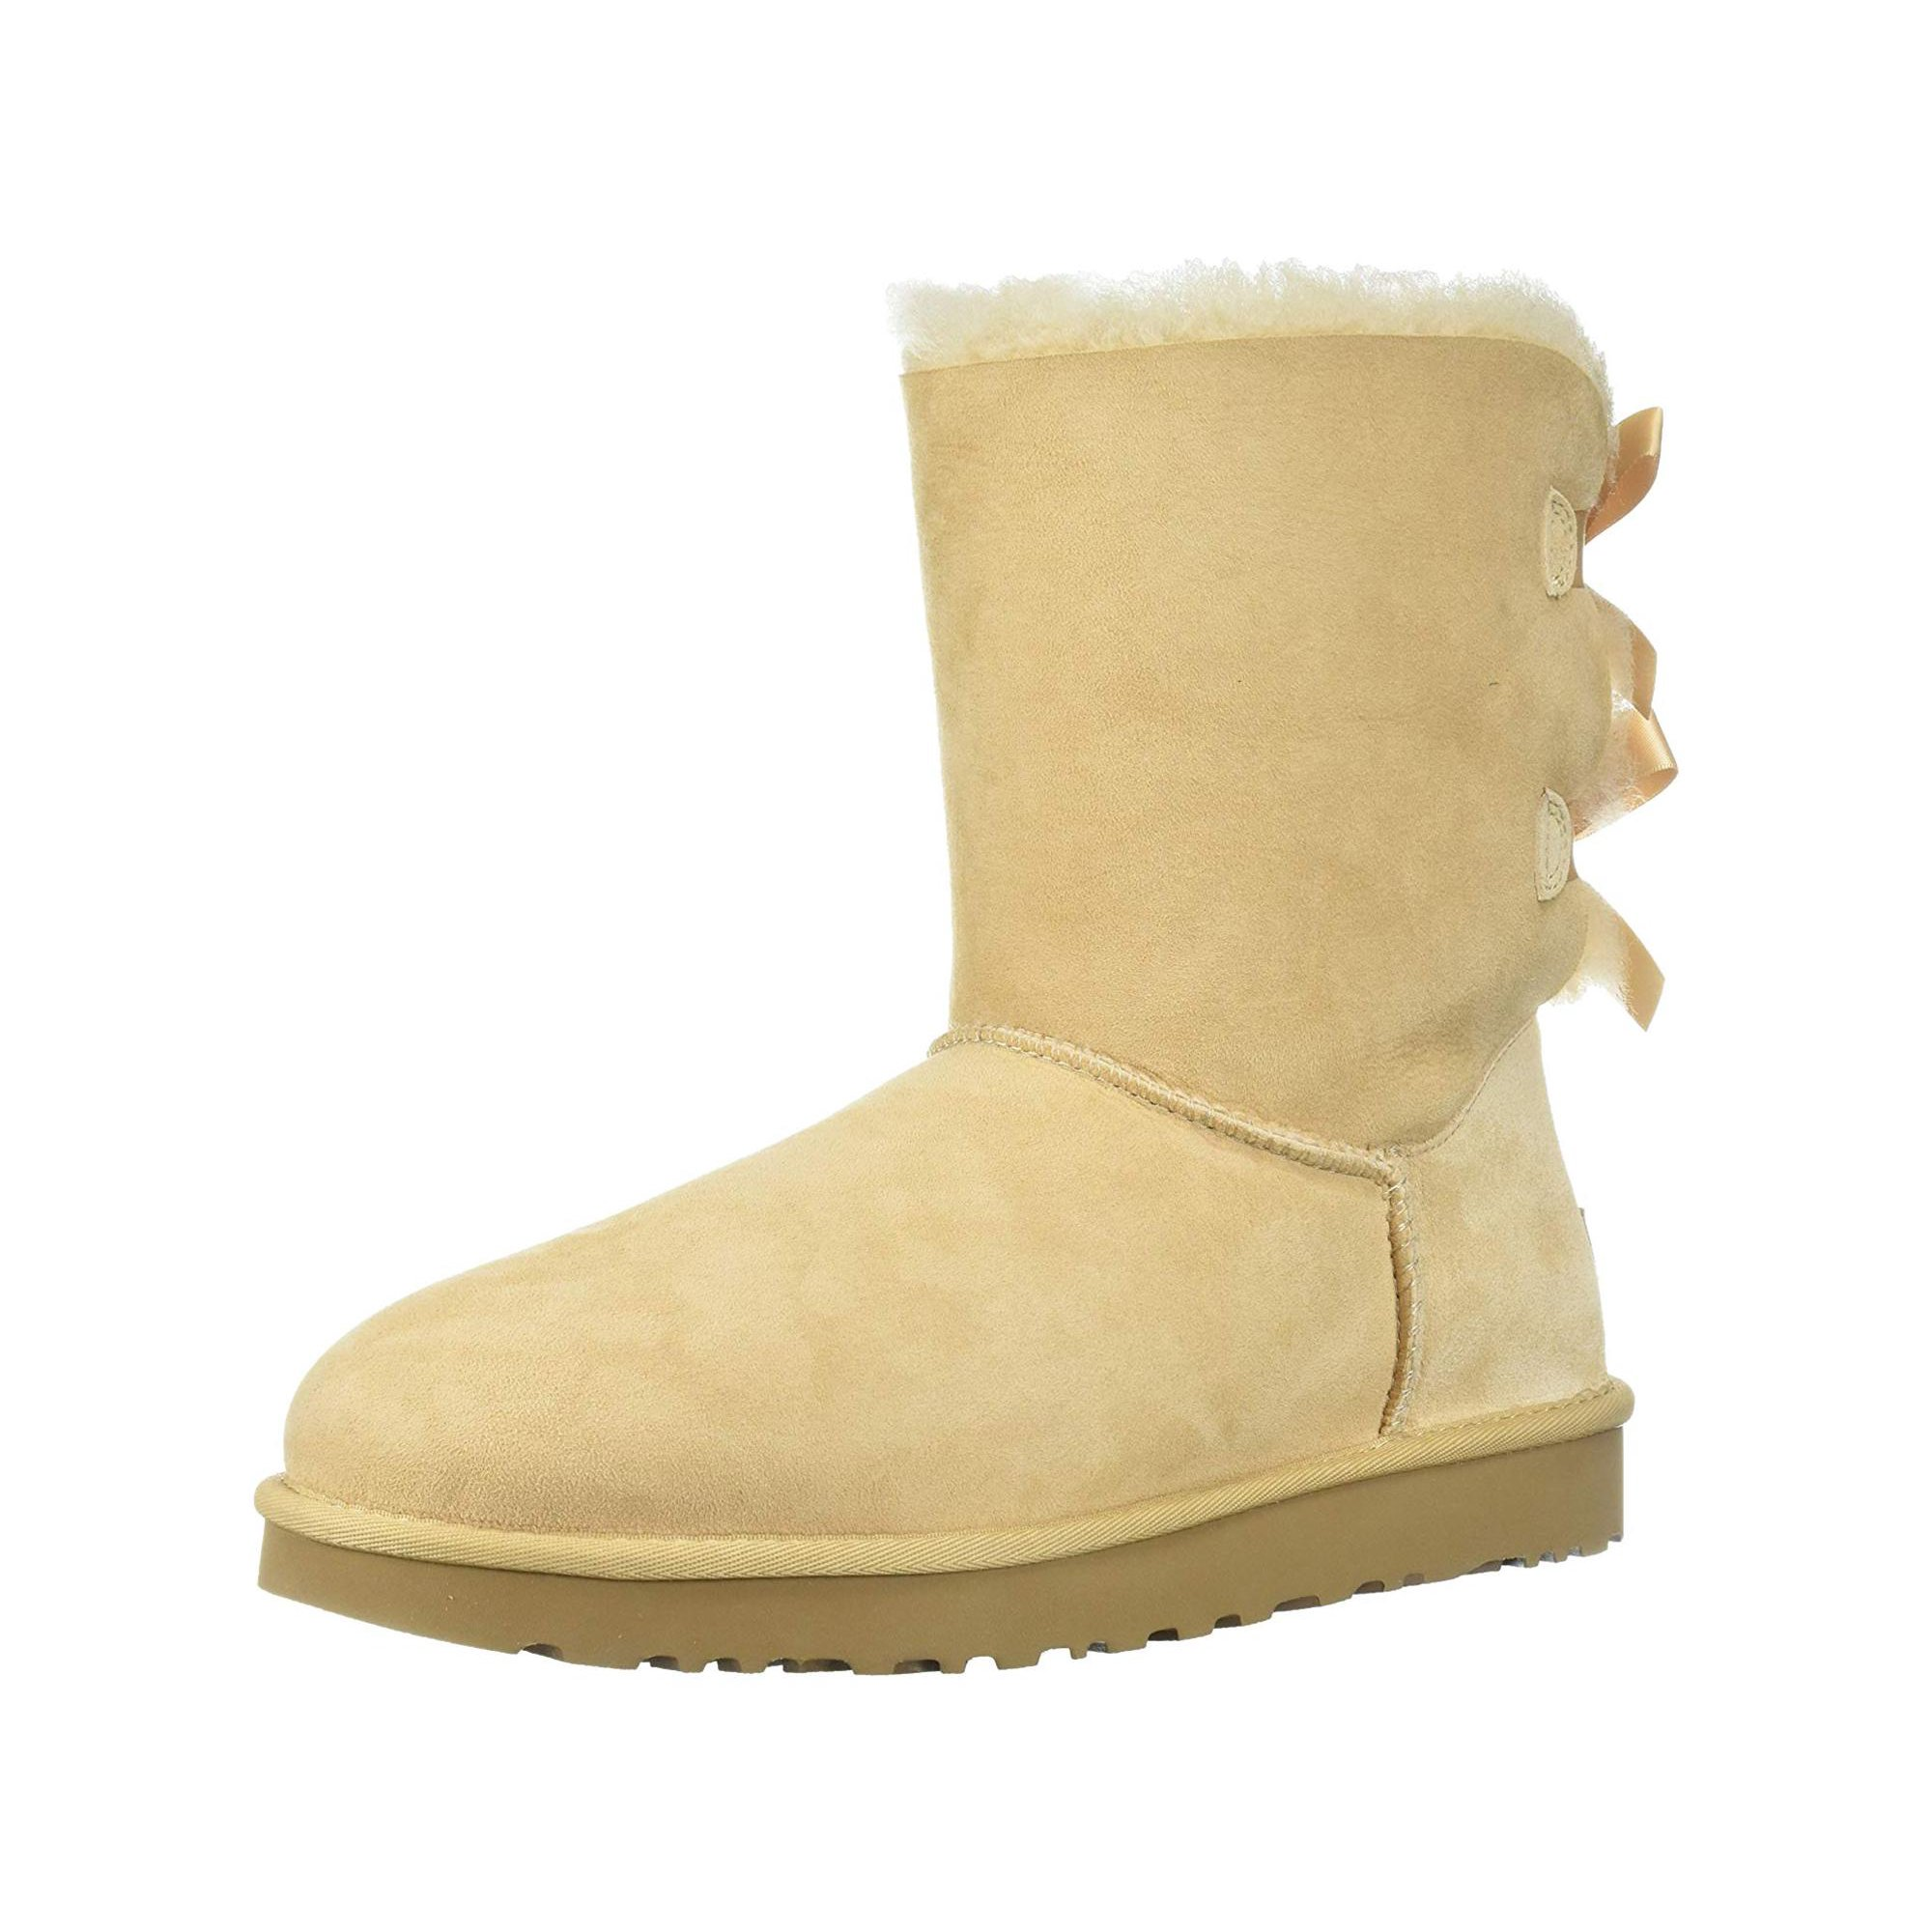 a5e7fa54603 Ugg Women's Bailey Bow Ii Winter Boot, , | Walmart Canada